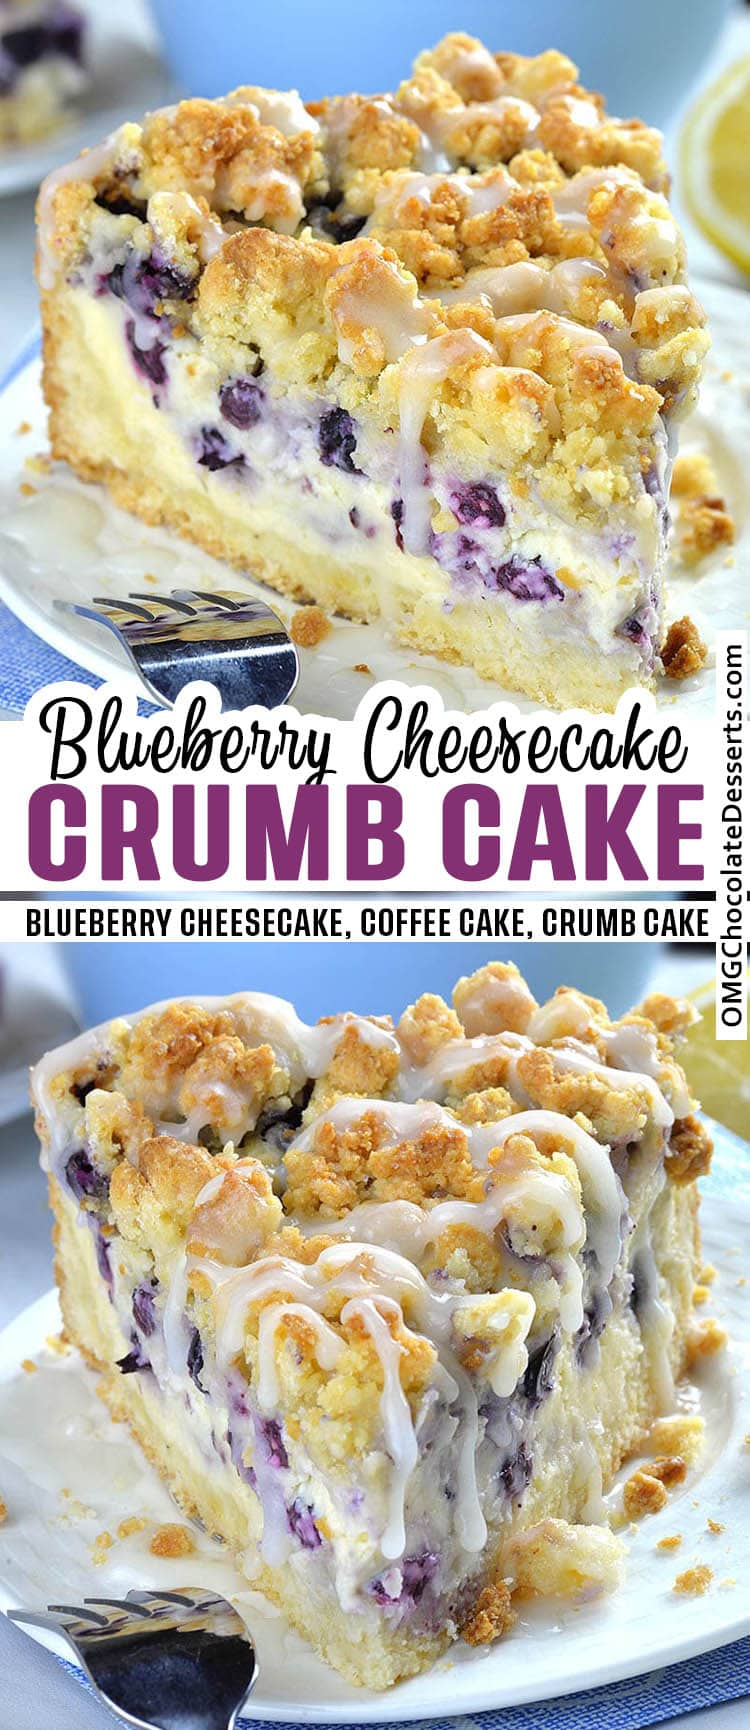 Two different images of  Blueberry Cheesecake Crumb Cake.